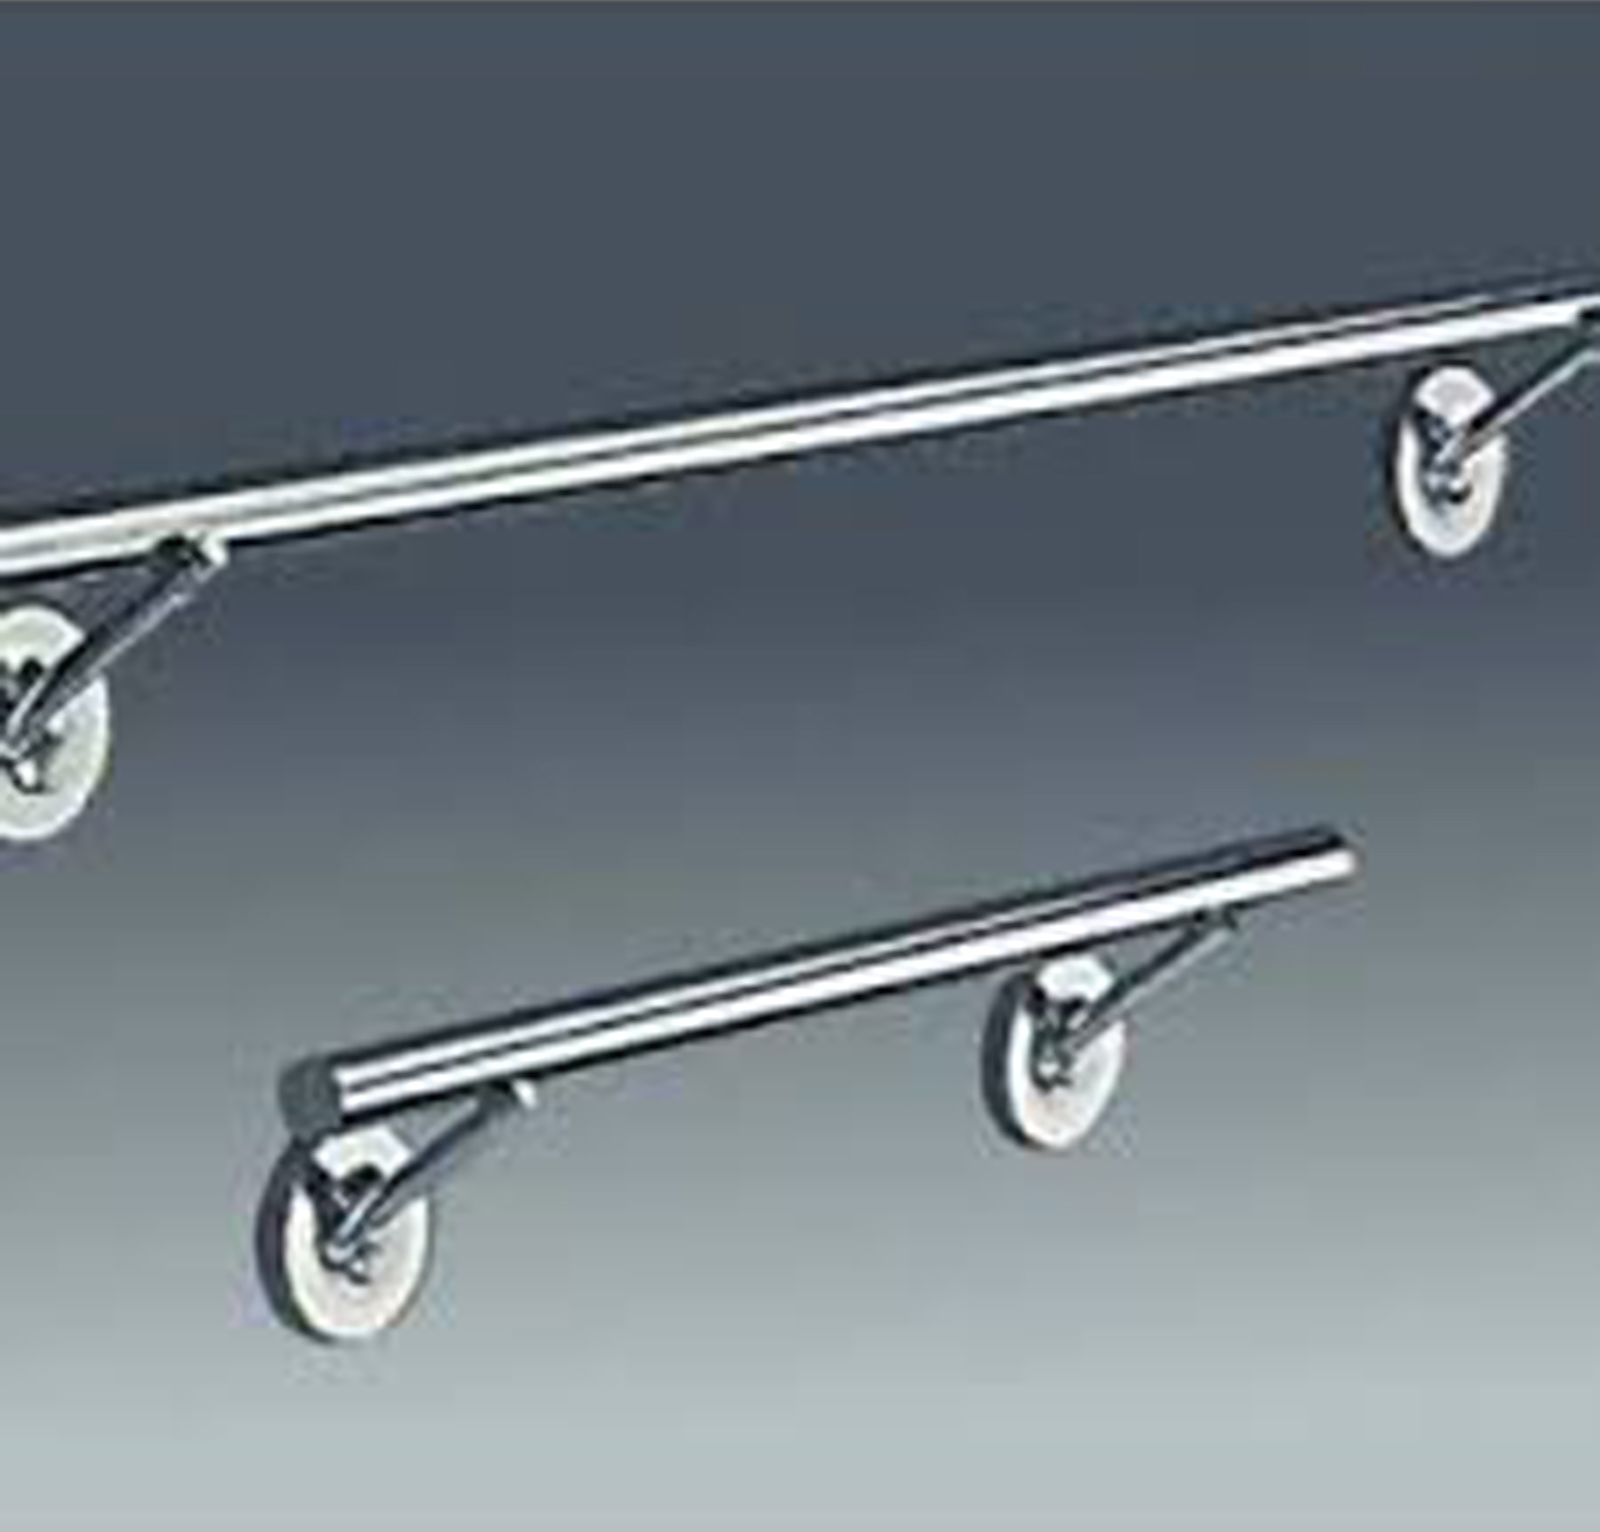 Starck 1 towel rails shown in 2 available lengths: 30 cm hand towel rail and 60 cmbath towel rail